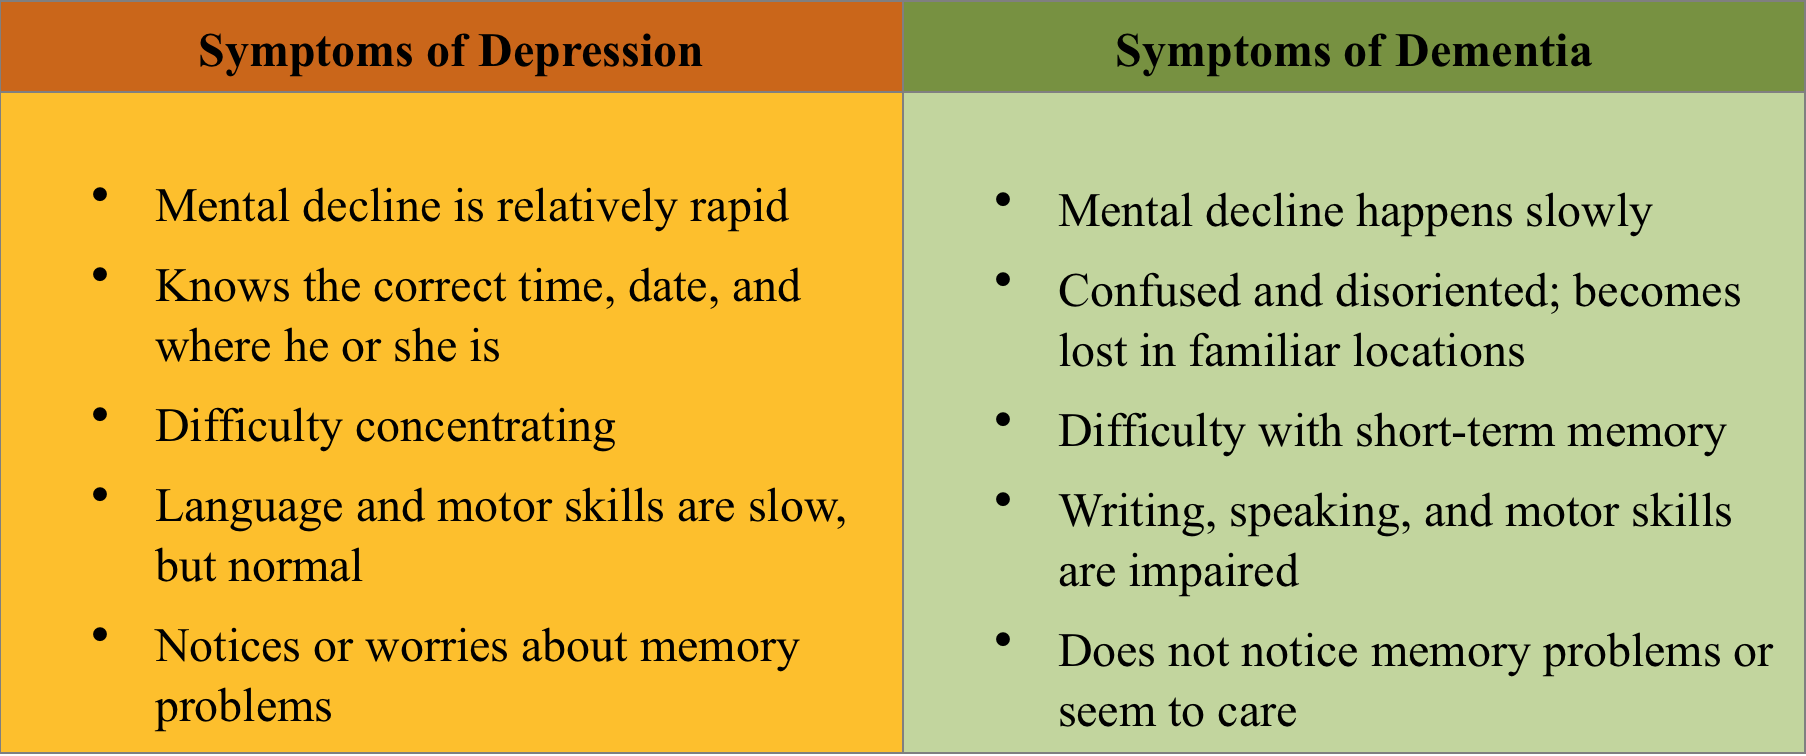 dementia major depressive disorder and geriatric Community-based mental health studies have revealed that the point prevalence of depressive disorders in the elderly population of the world varies between 10% and 20%, depending on cultural situations a retrospective study based on analysis of various study reports was conducted, to determine the .